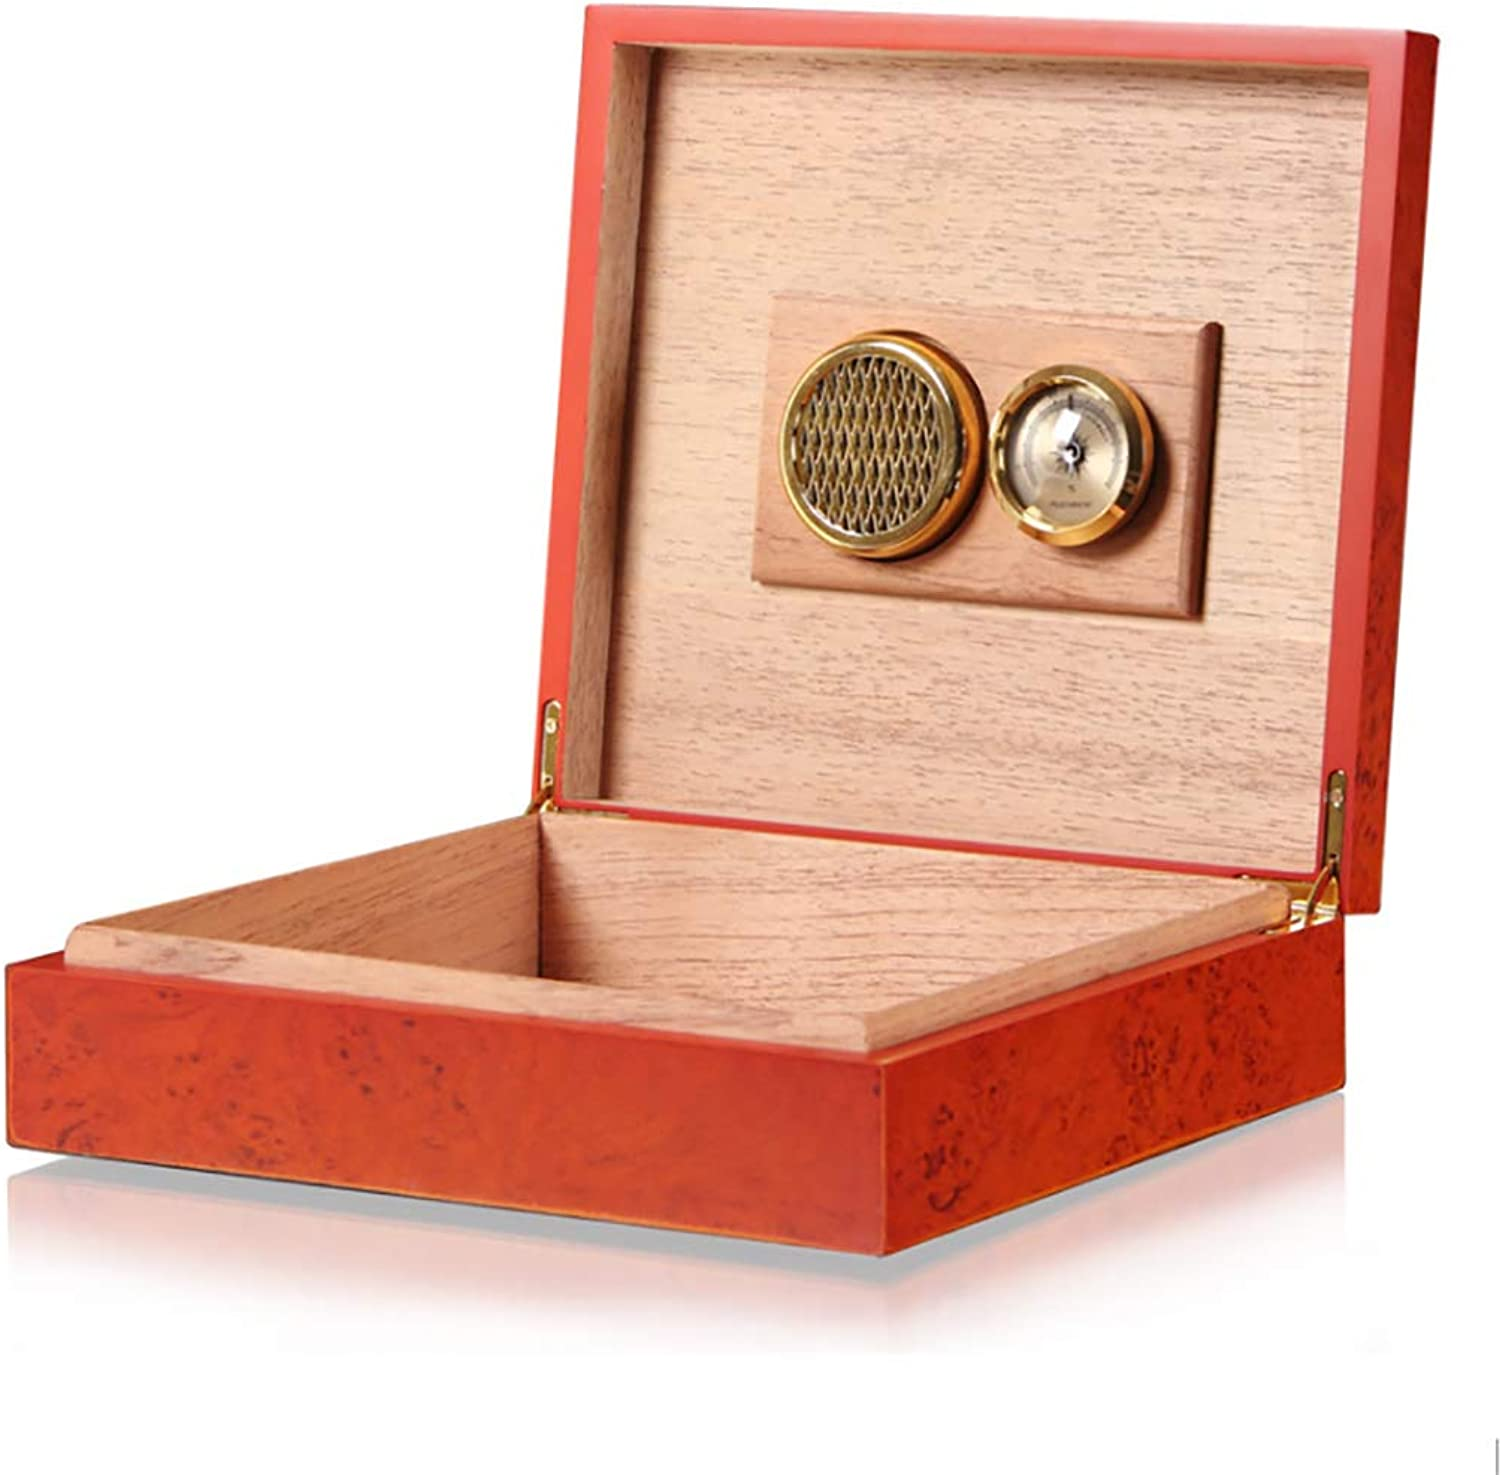 Cigar Humidor Cedar Wooden Cigar Case Portable Cigar Box Organiser with Humidifier& Hygrometer, Birthday, Father's Day Gift, Max Capacity 20